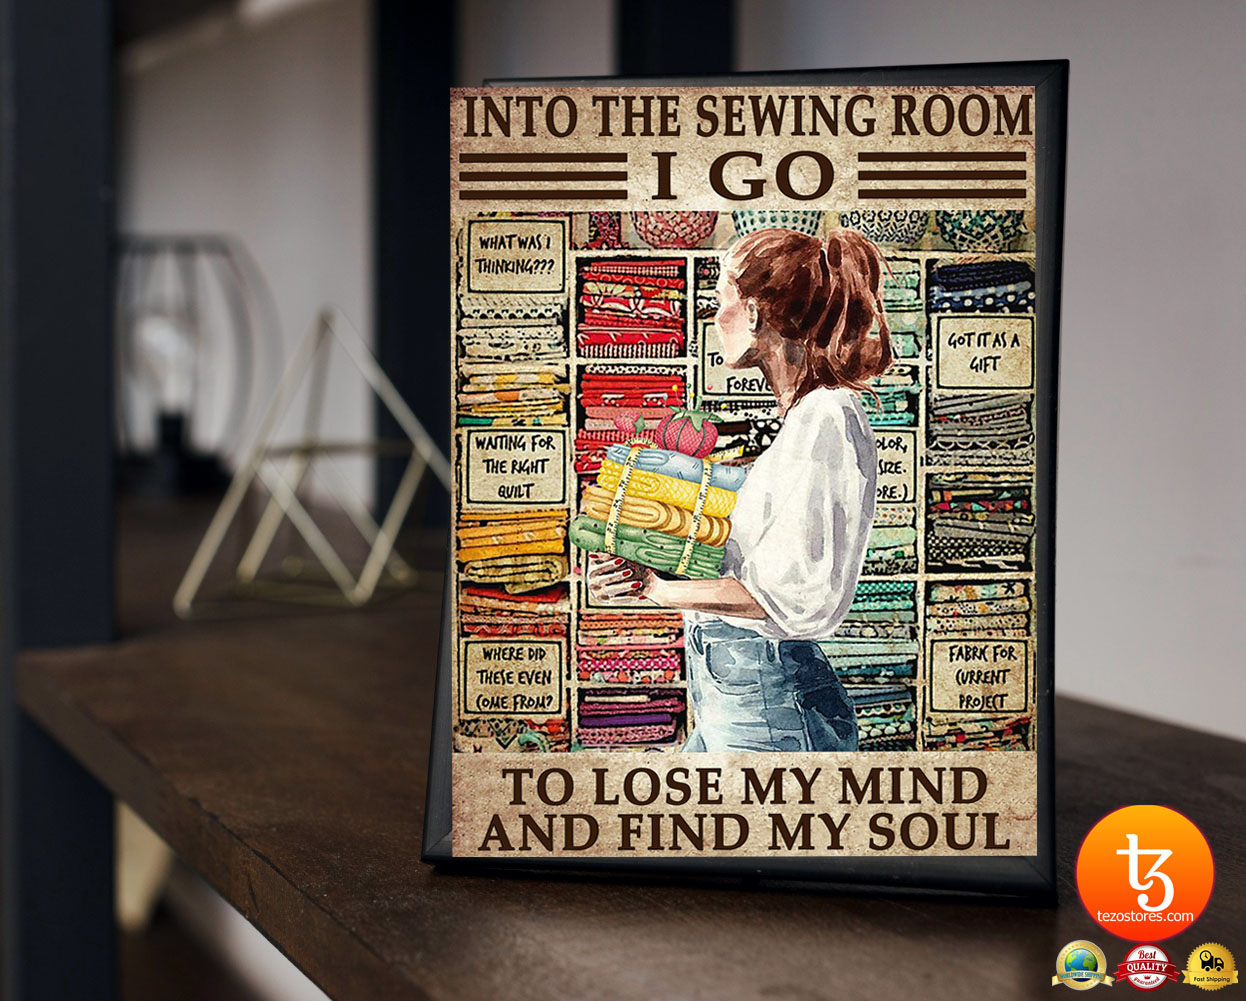 Into the sewing room i go to lose my mind and find my soul poster 19